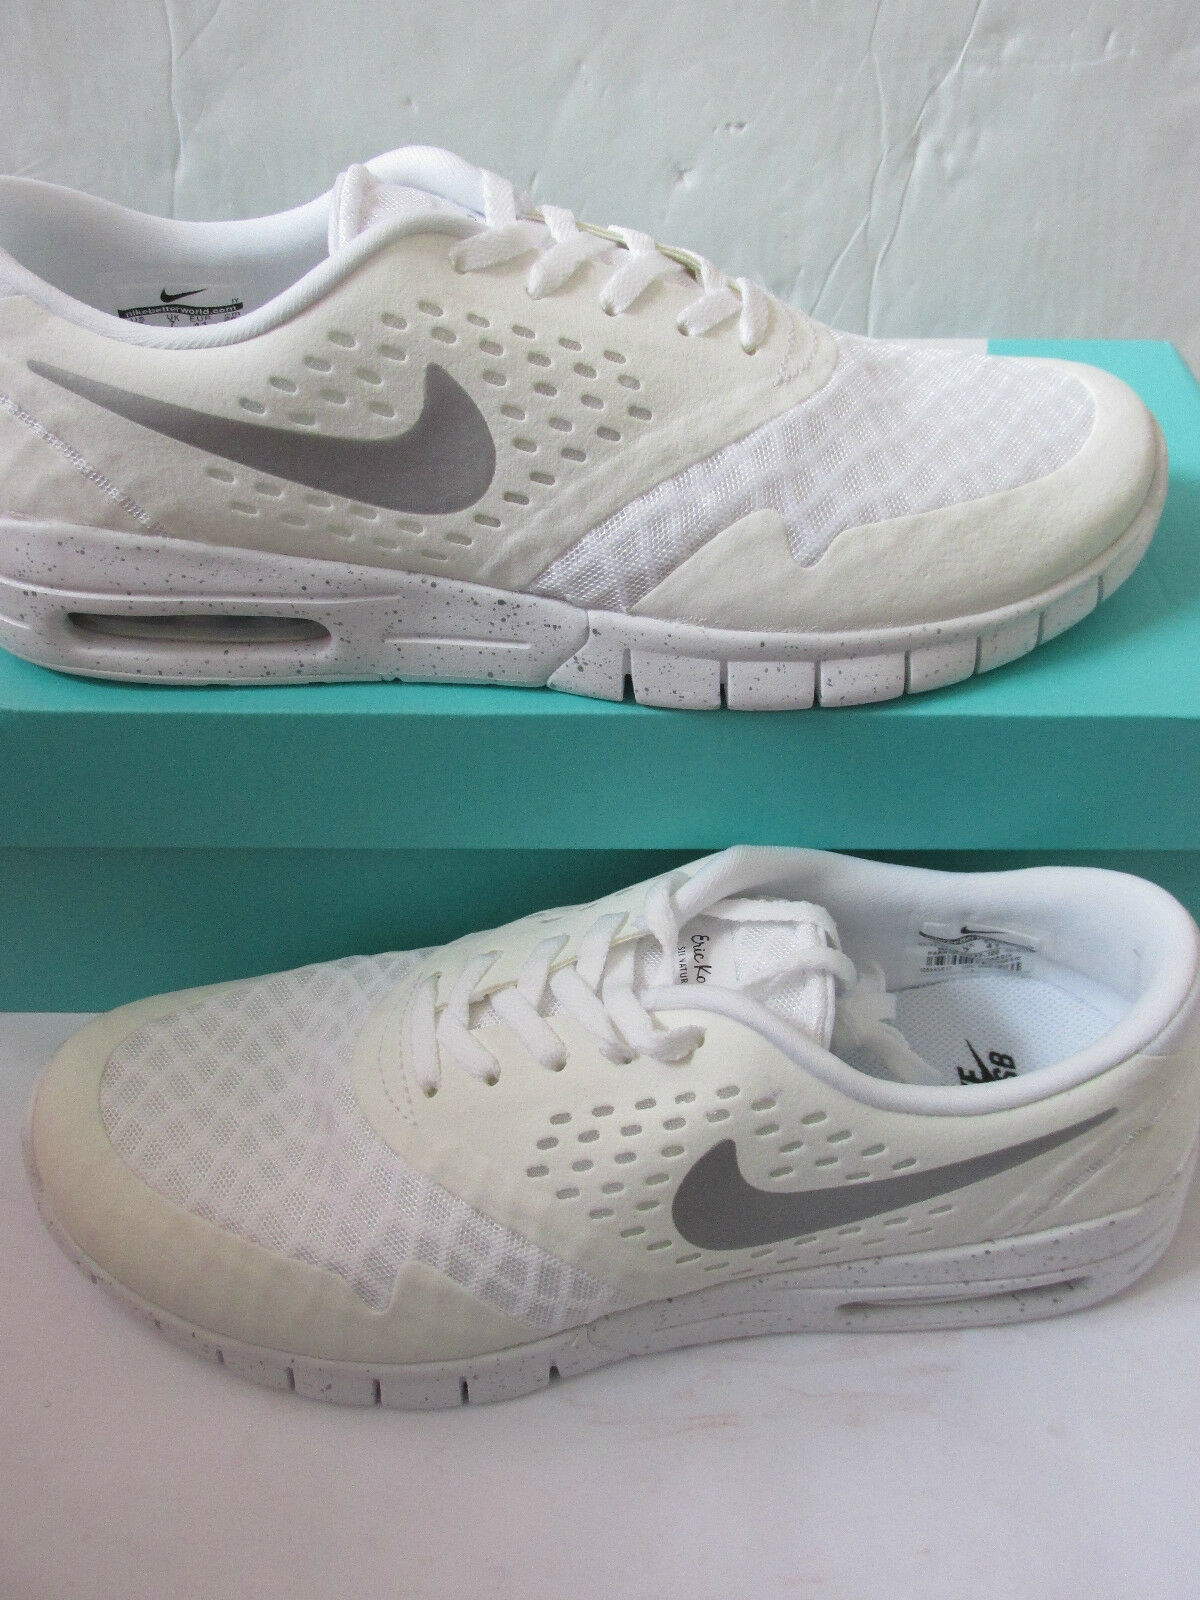 nike SB eric 100 koston 2 max mens trainers 631047 100 eric sneakers shoes 65849f